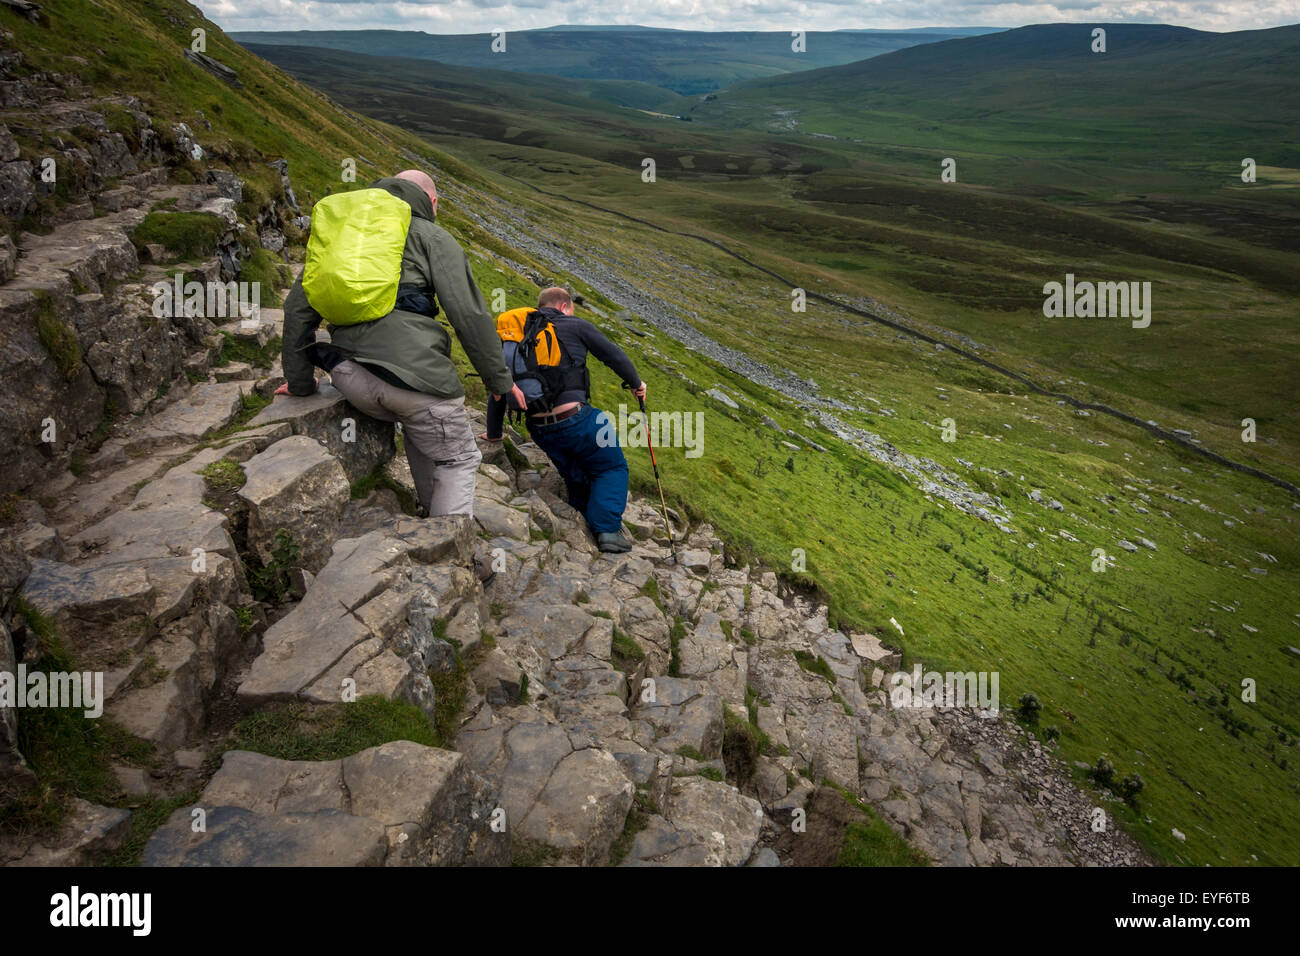 Two people descending carefully off the steep, rocky section of Pen-y-ghent in the Yorkshire Dales, part of the - Stock Image